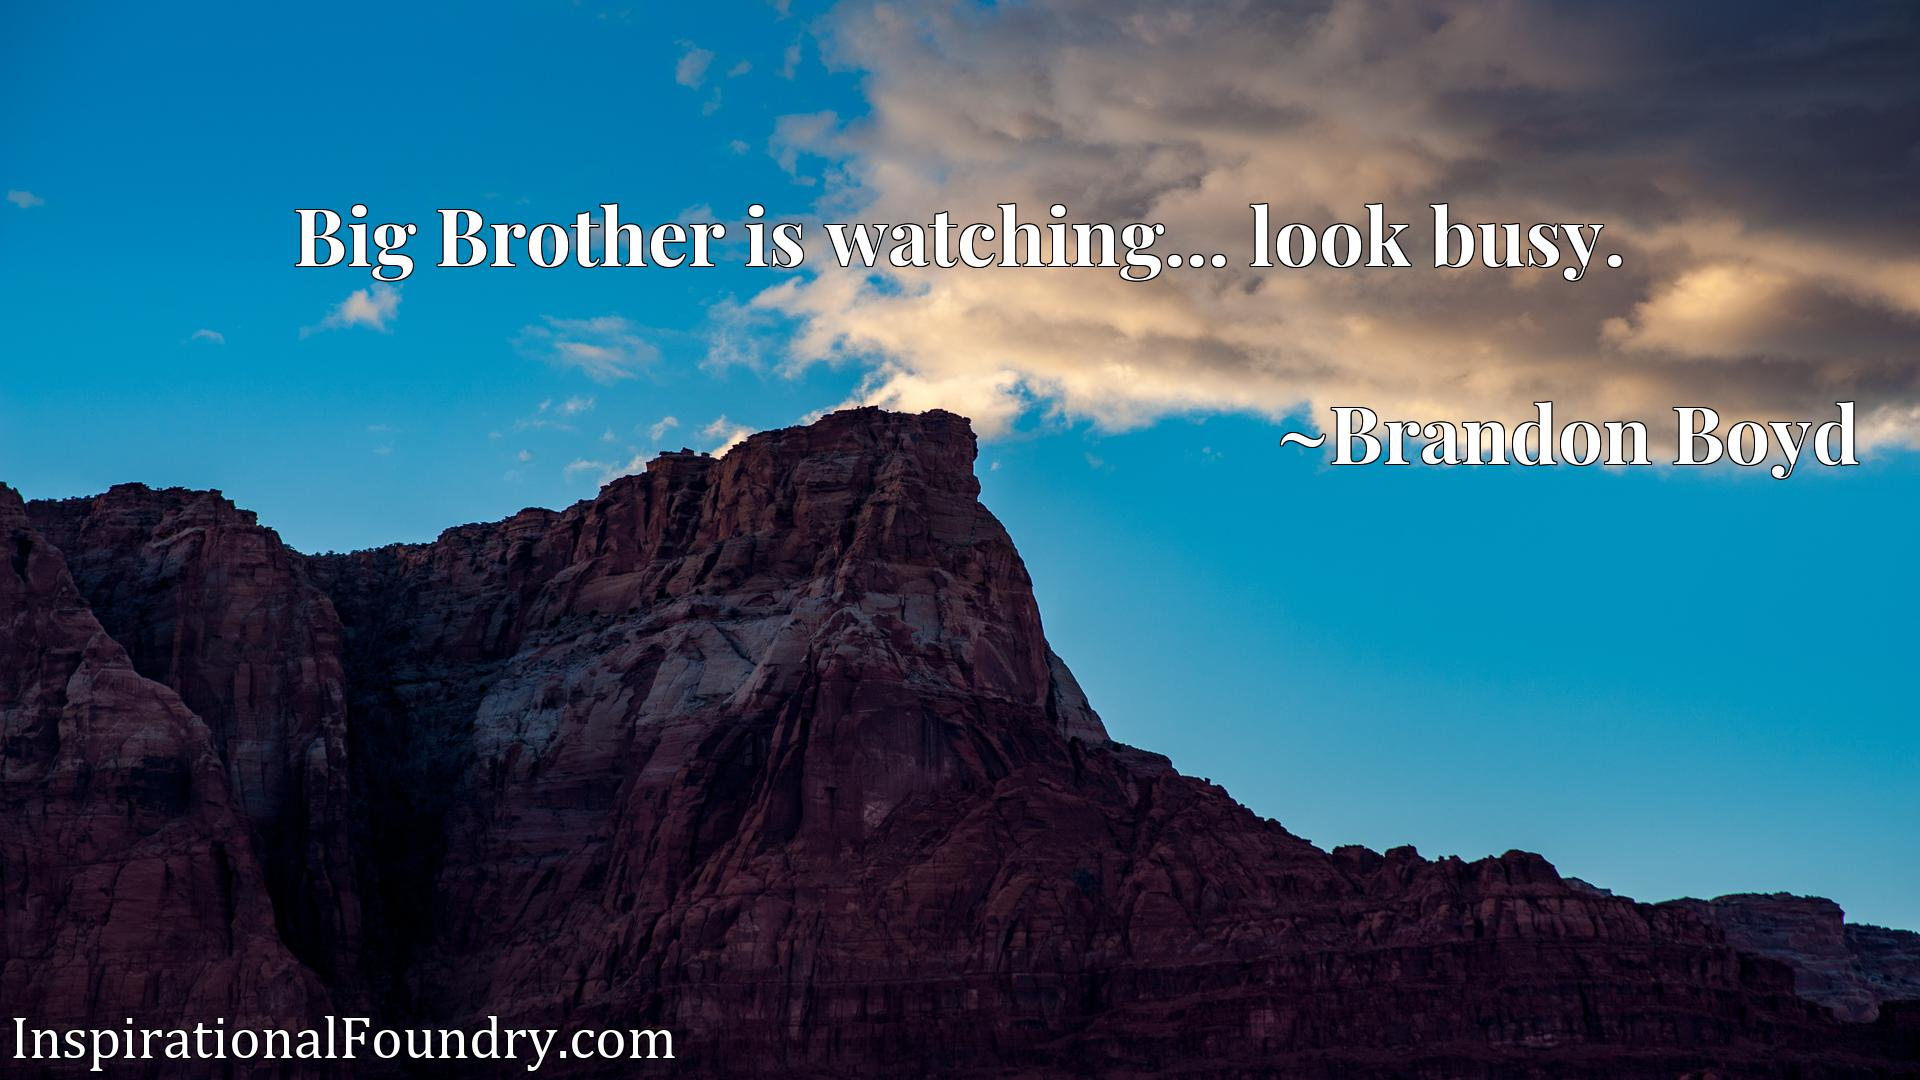 Big Brother is watching... look busy.